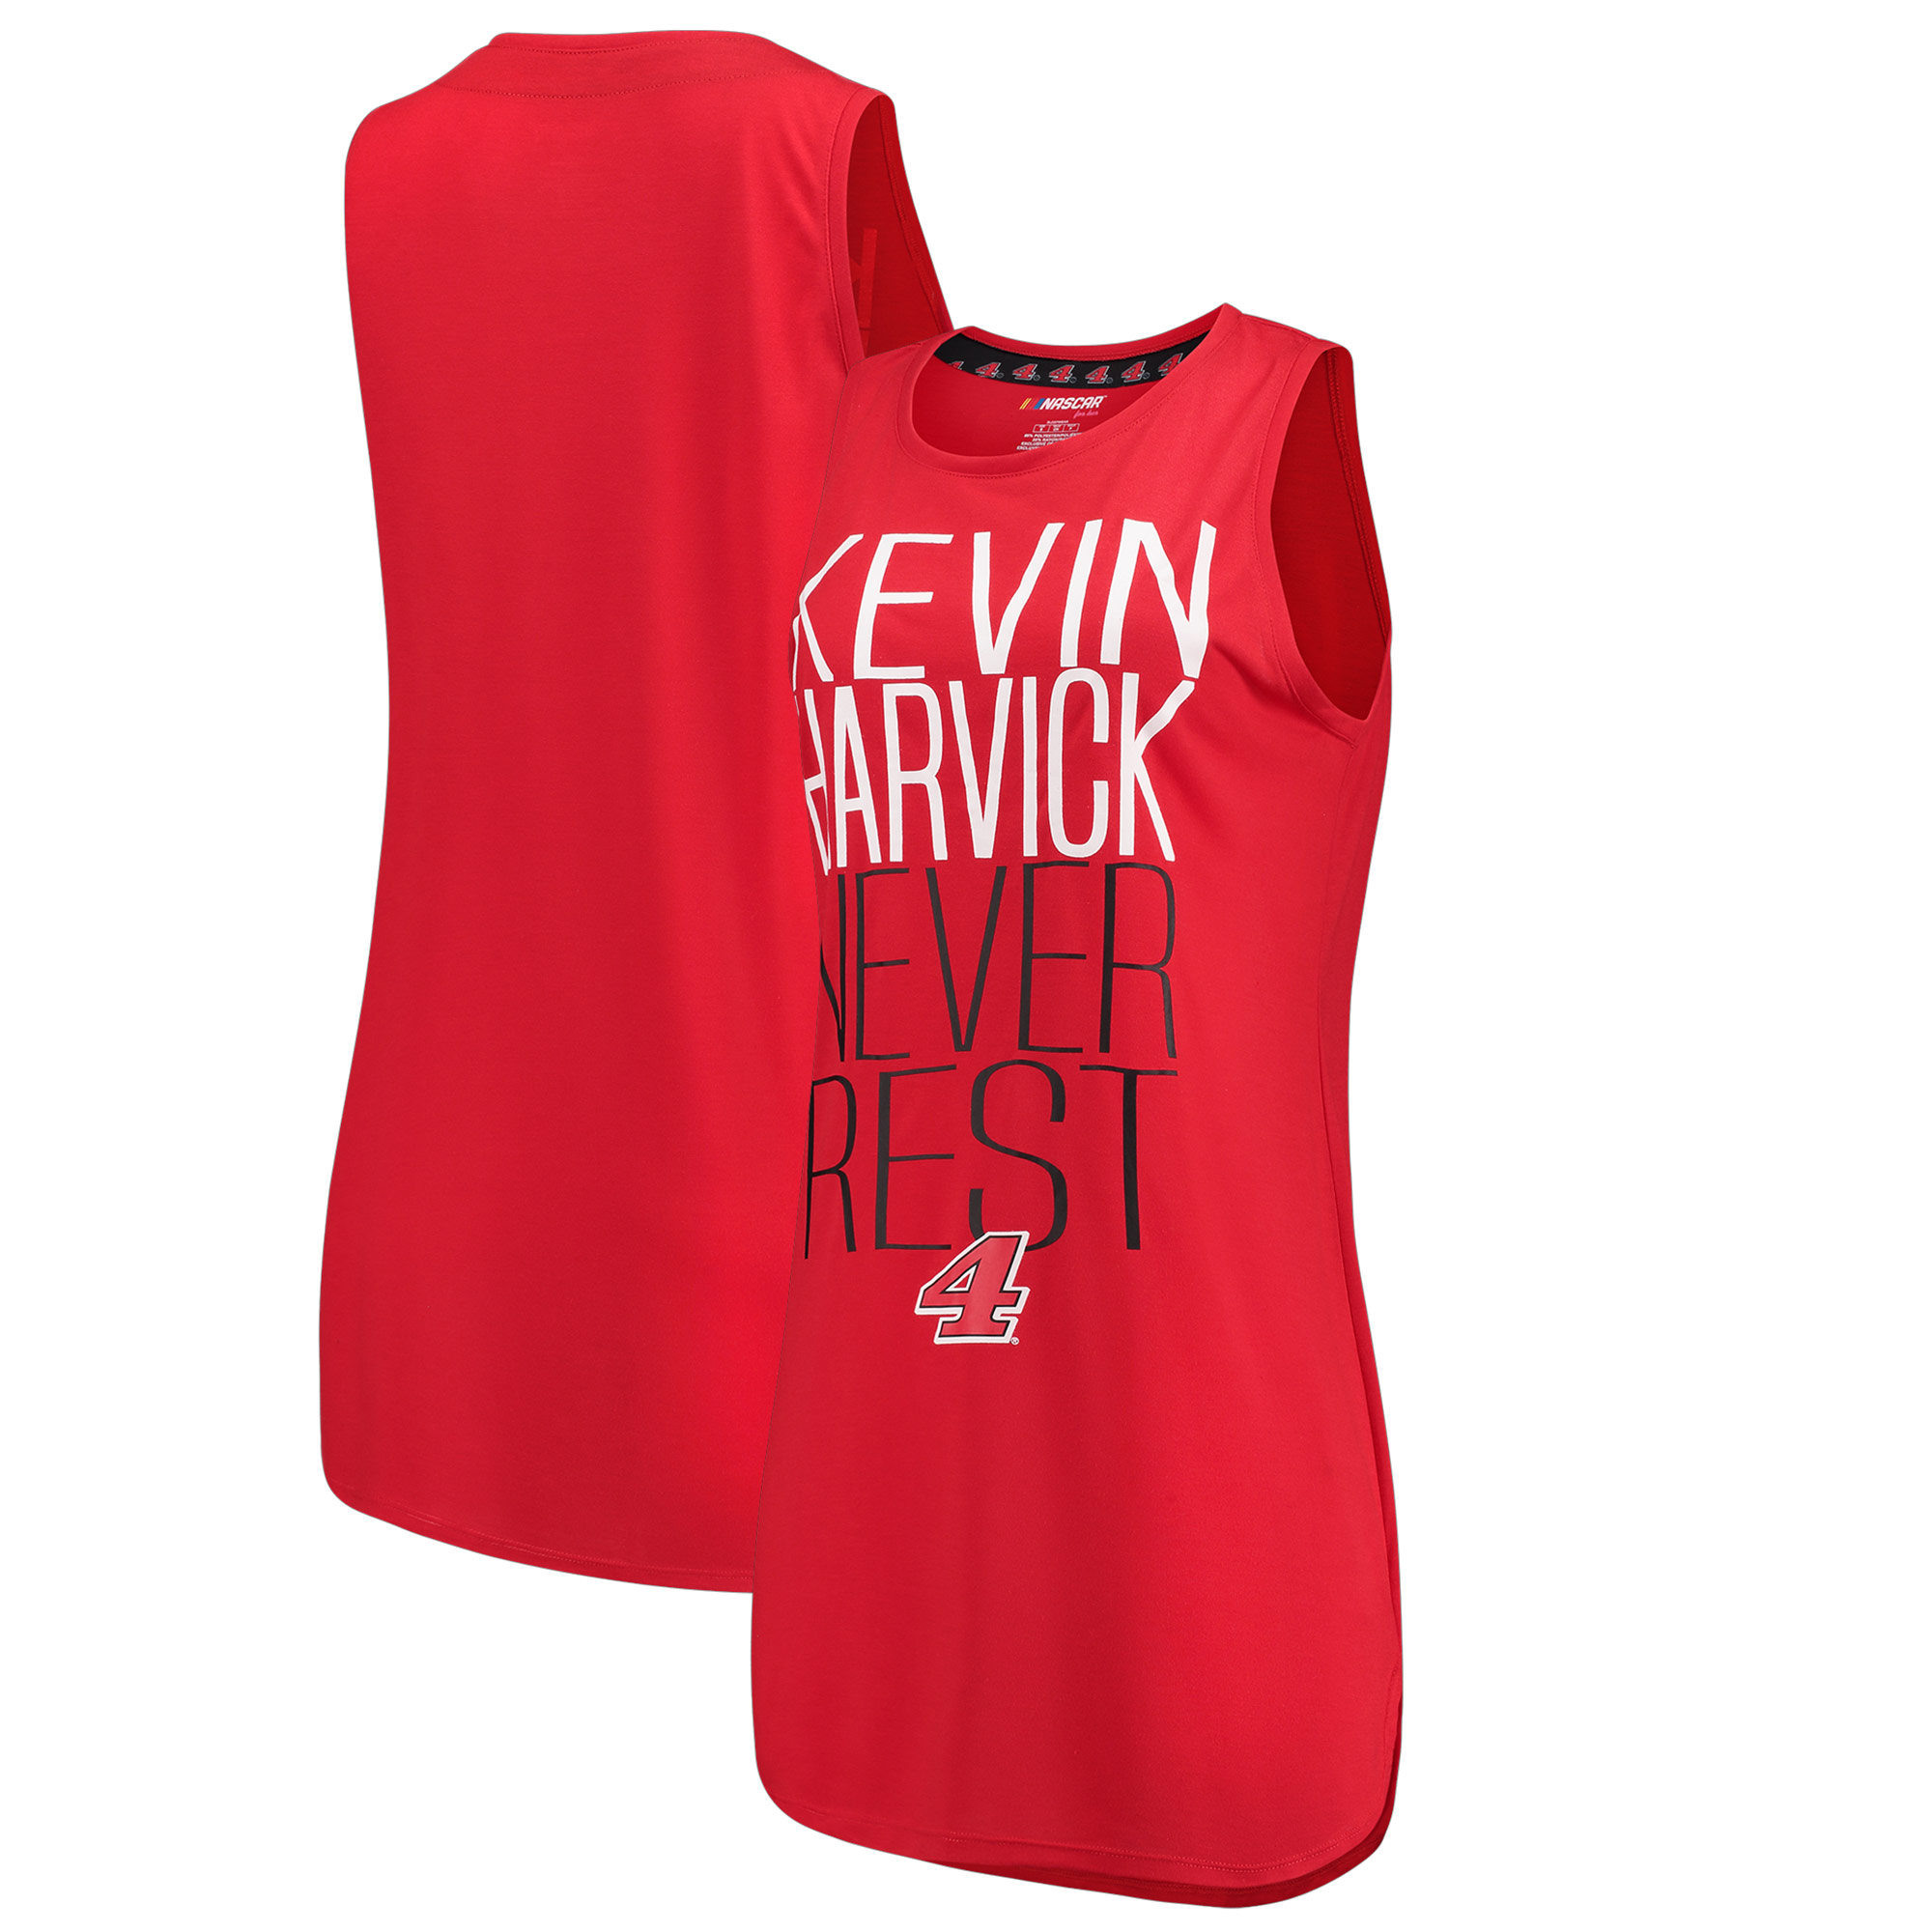 Kevin Harvick Concepts Sport Women's Tempo Sleeveless Nightshirt - Red/Black